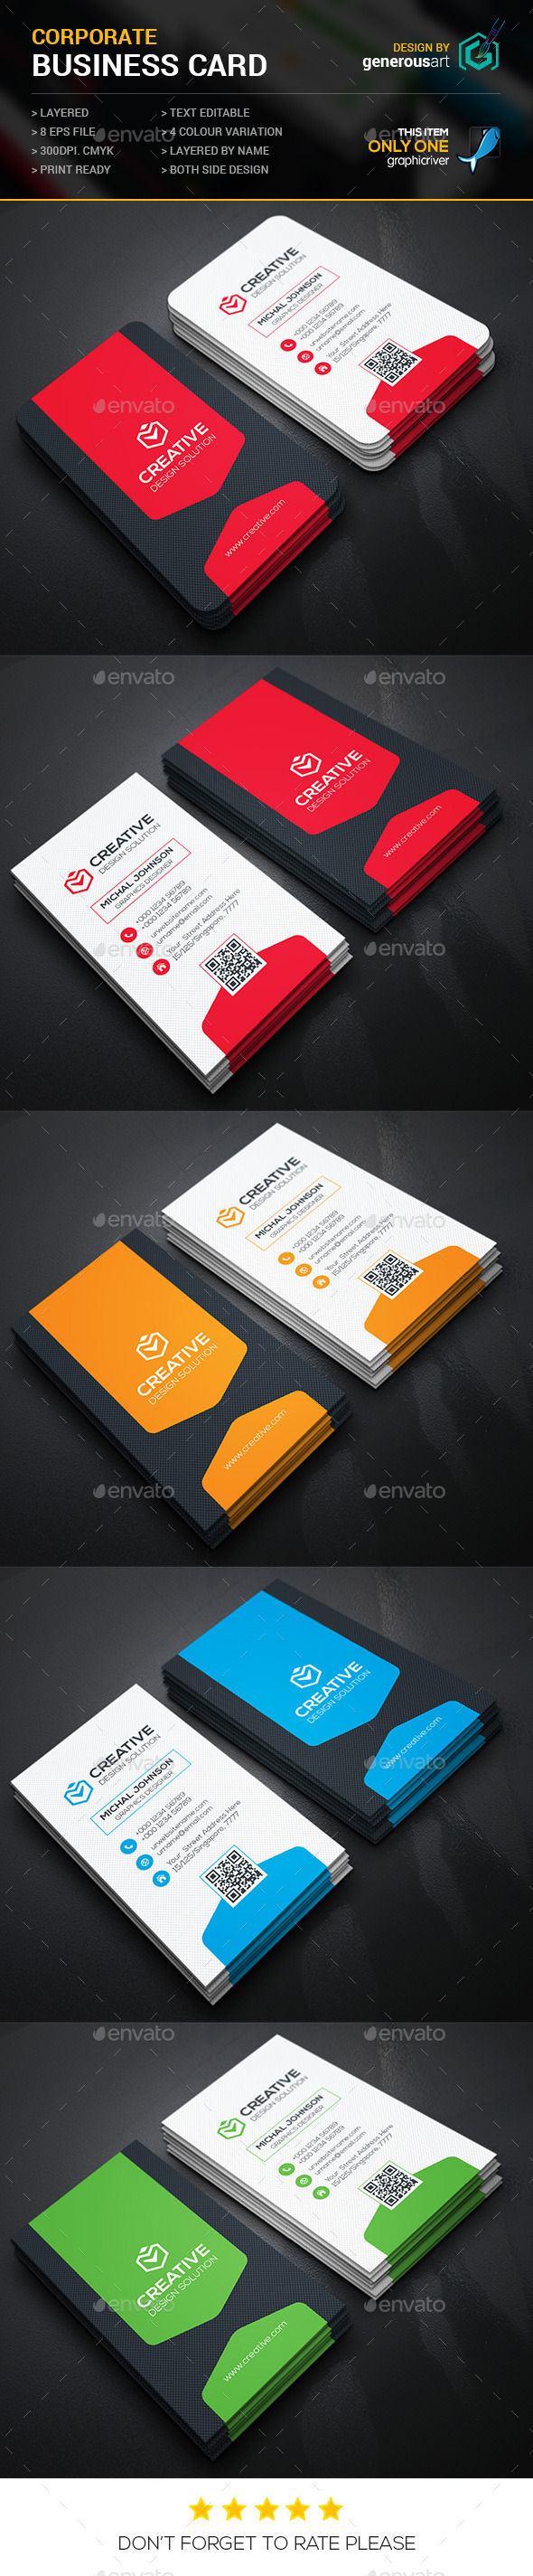 GraphicRiver Creative Business Cards-2 11907017